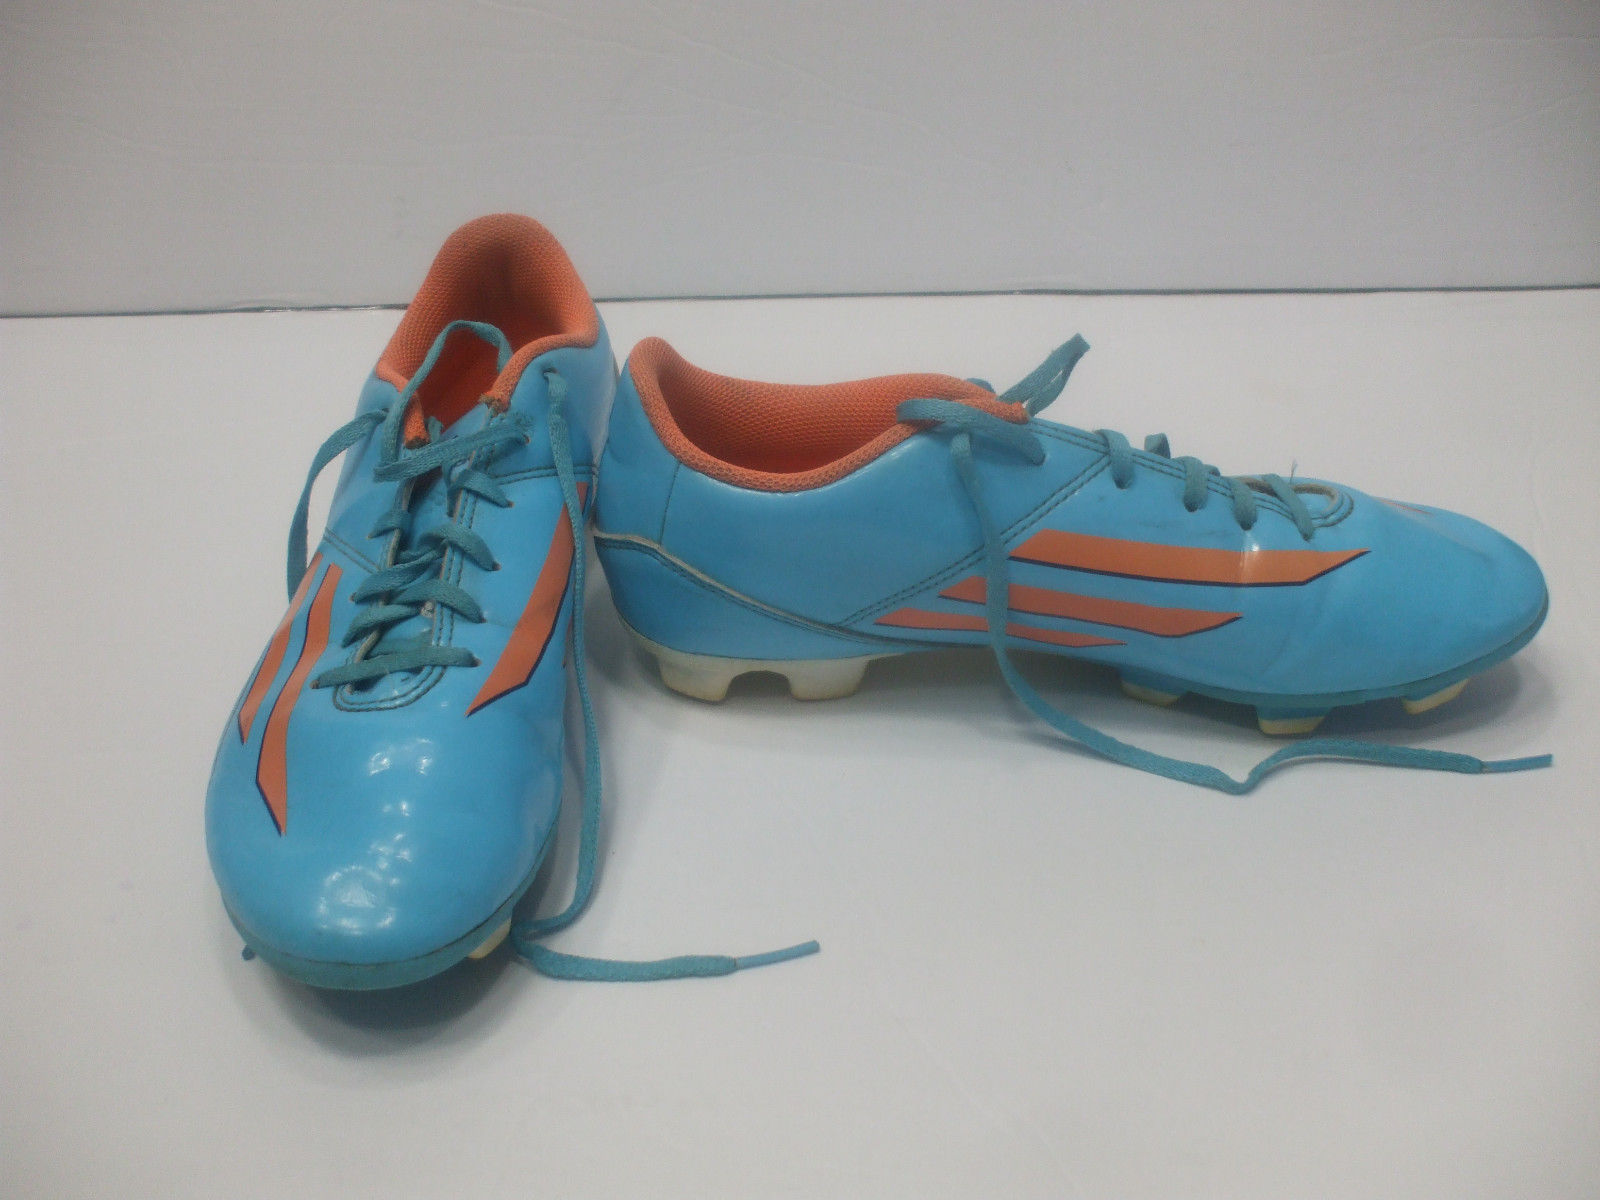 6f137475b2b Adidas F50 adizero TRX FG W Womens Synthetic Soccer Cleats Size 8 From Toe  to He